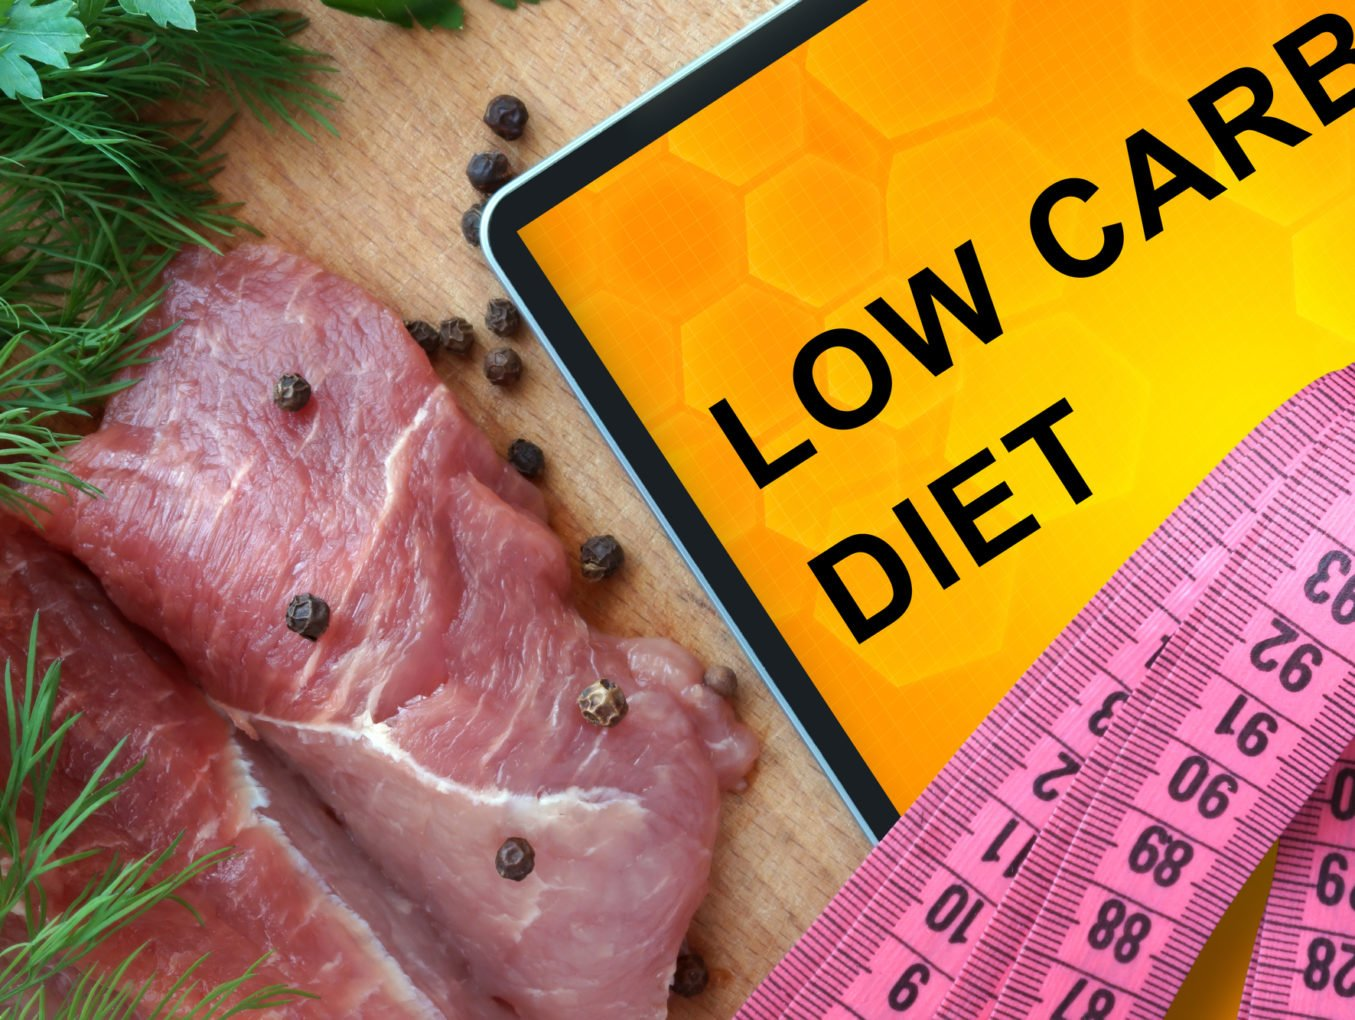 Which Indian Food Items For LCHF Keto or Low-carb Diet?